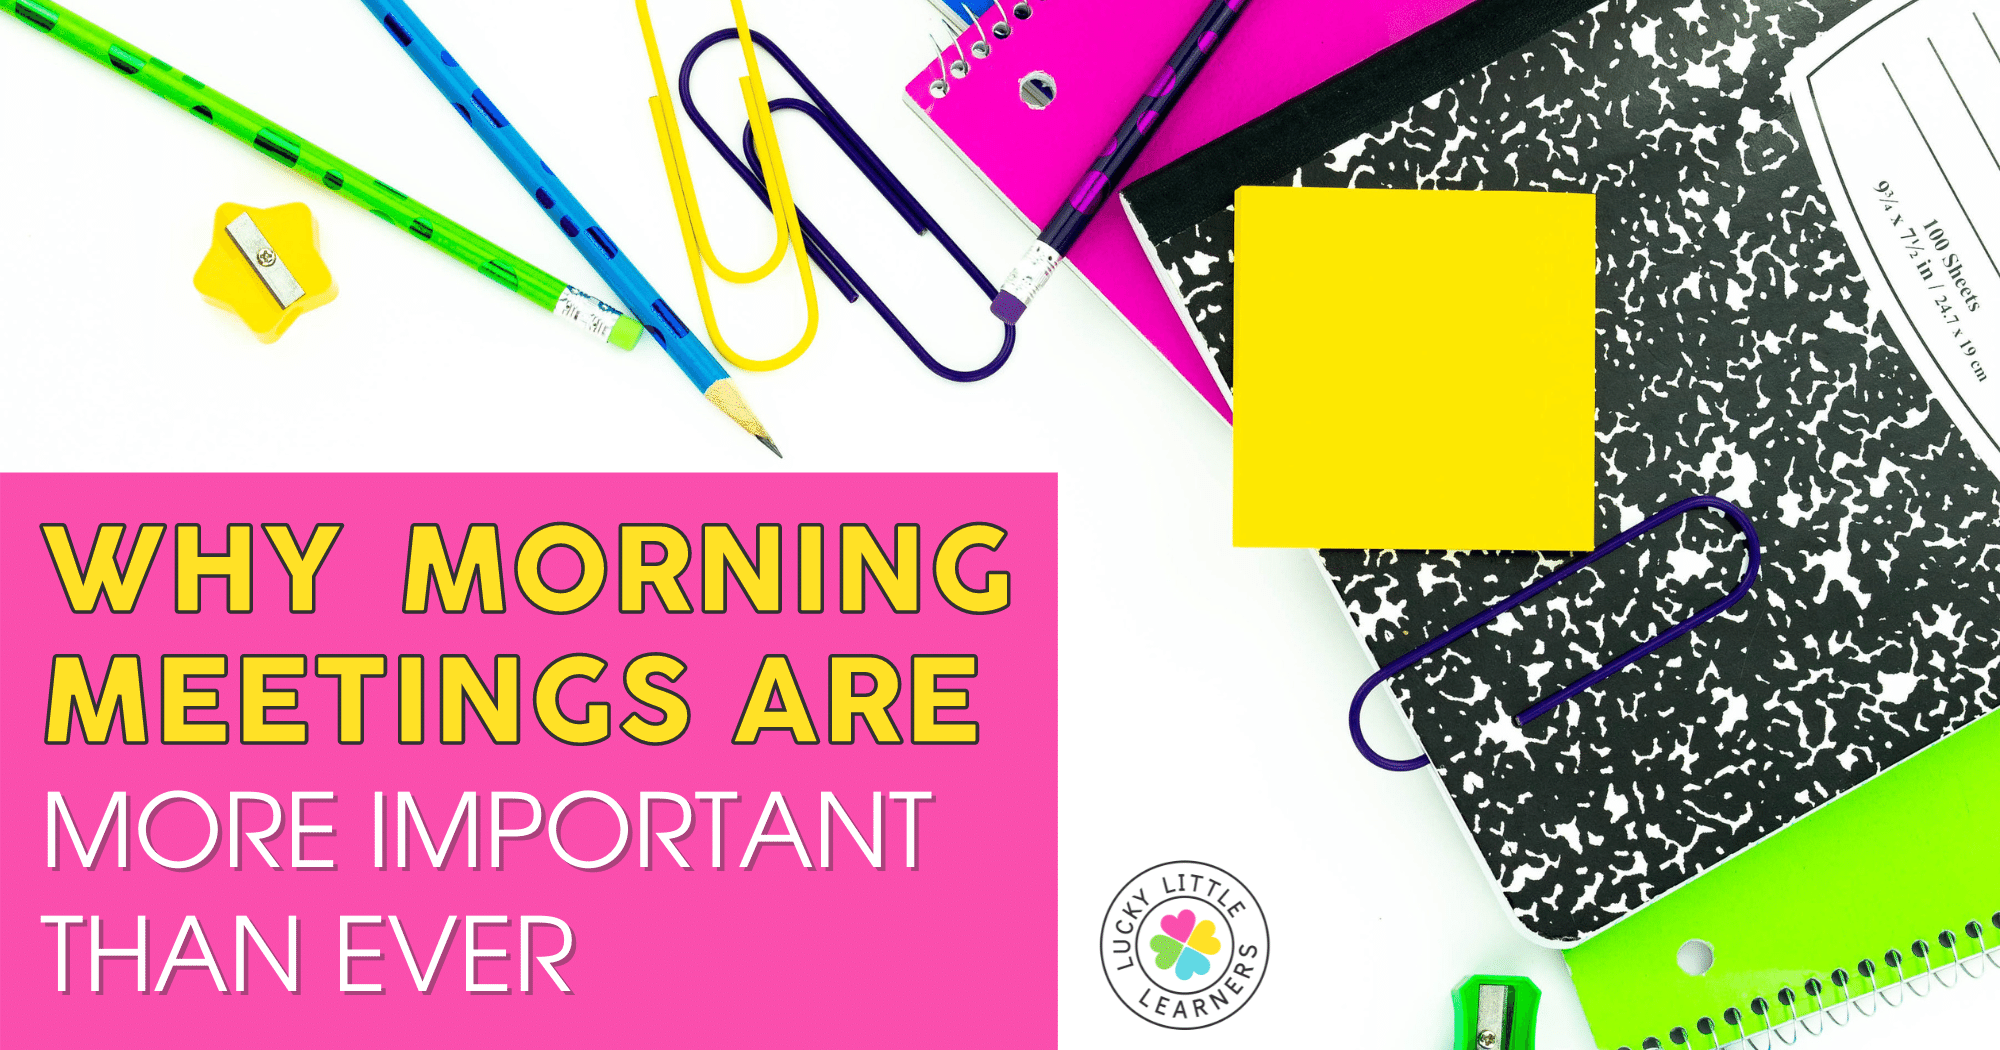 Why Morning Meetings are More Important than Ever